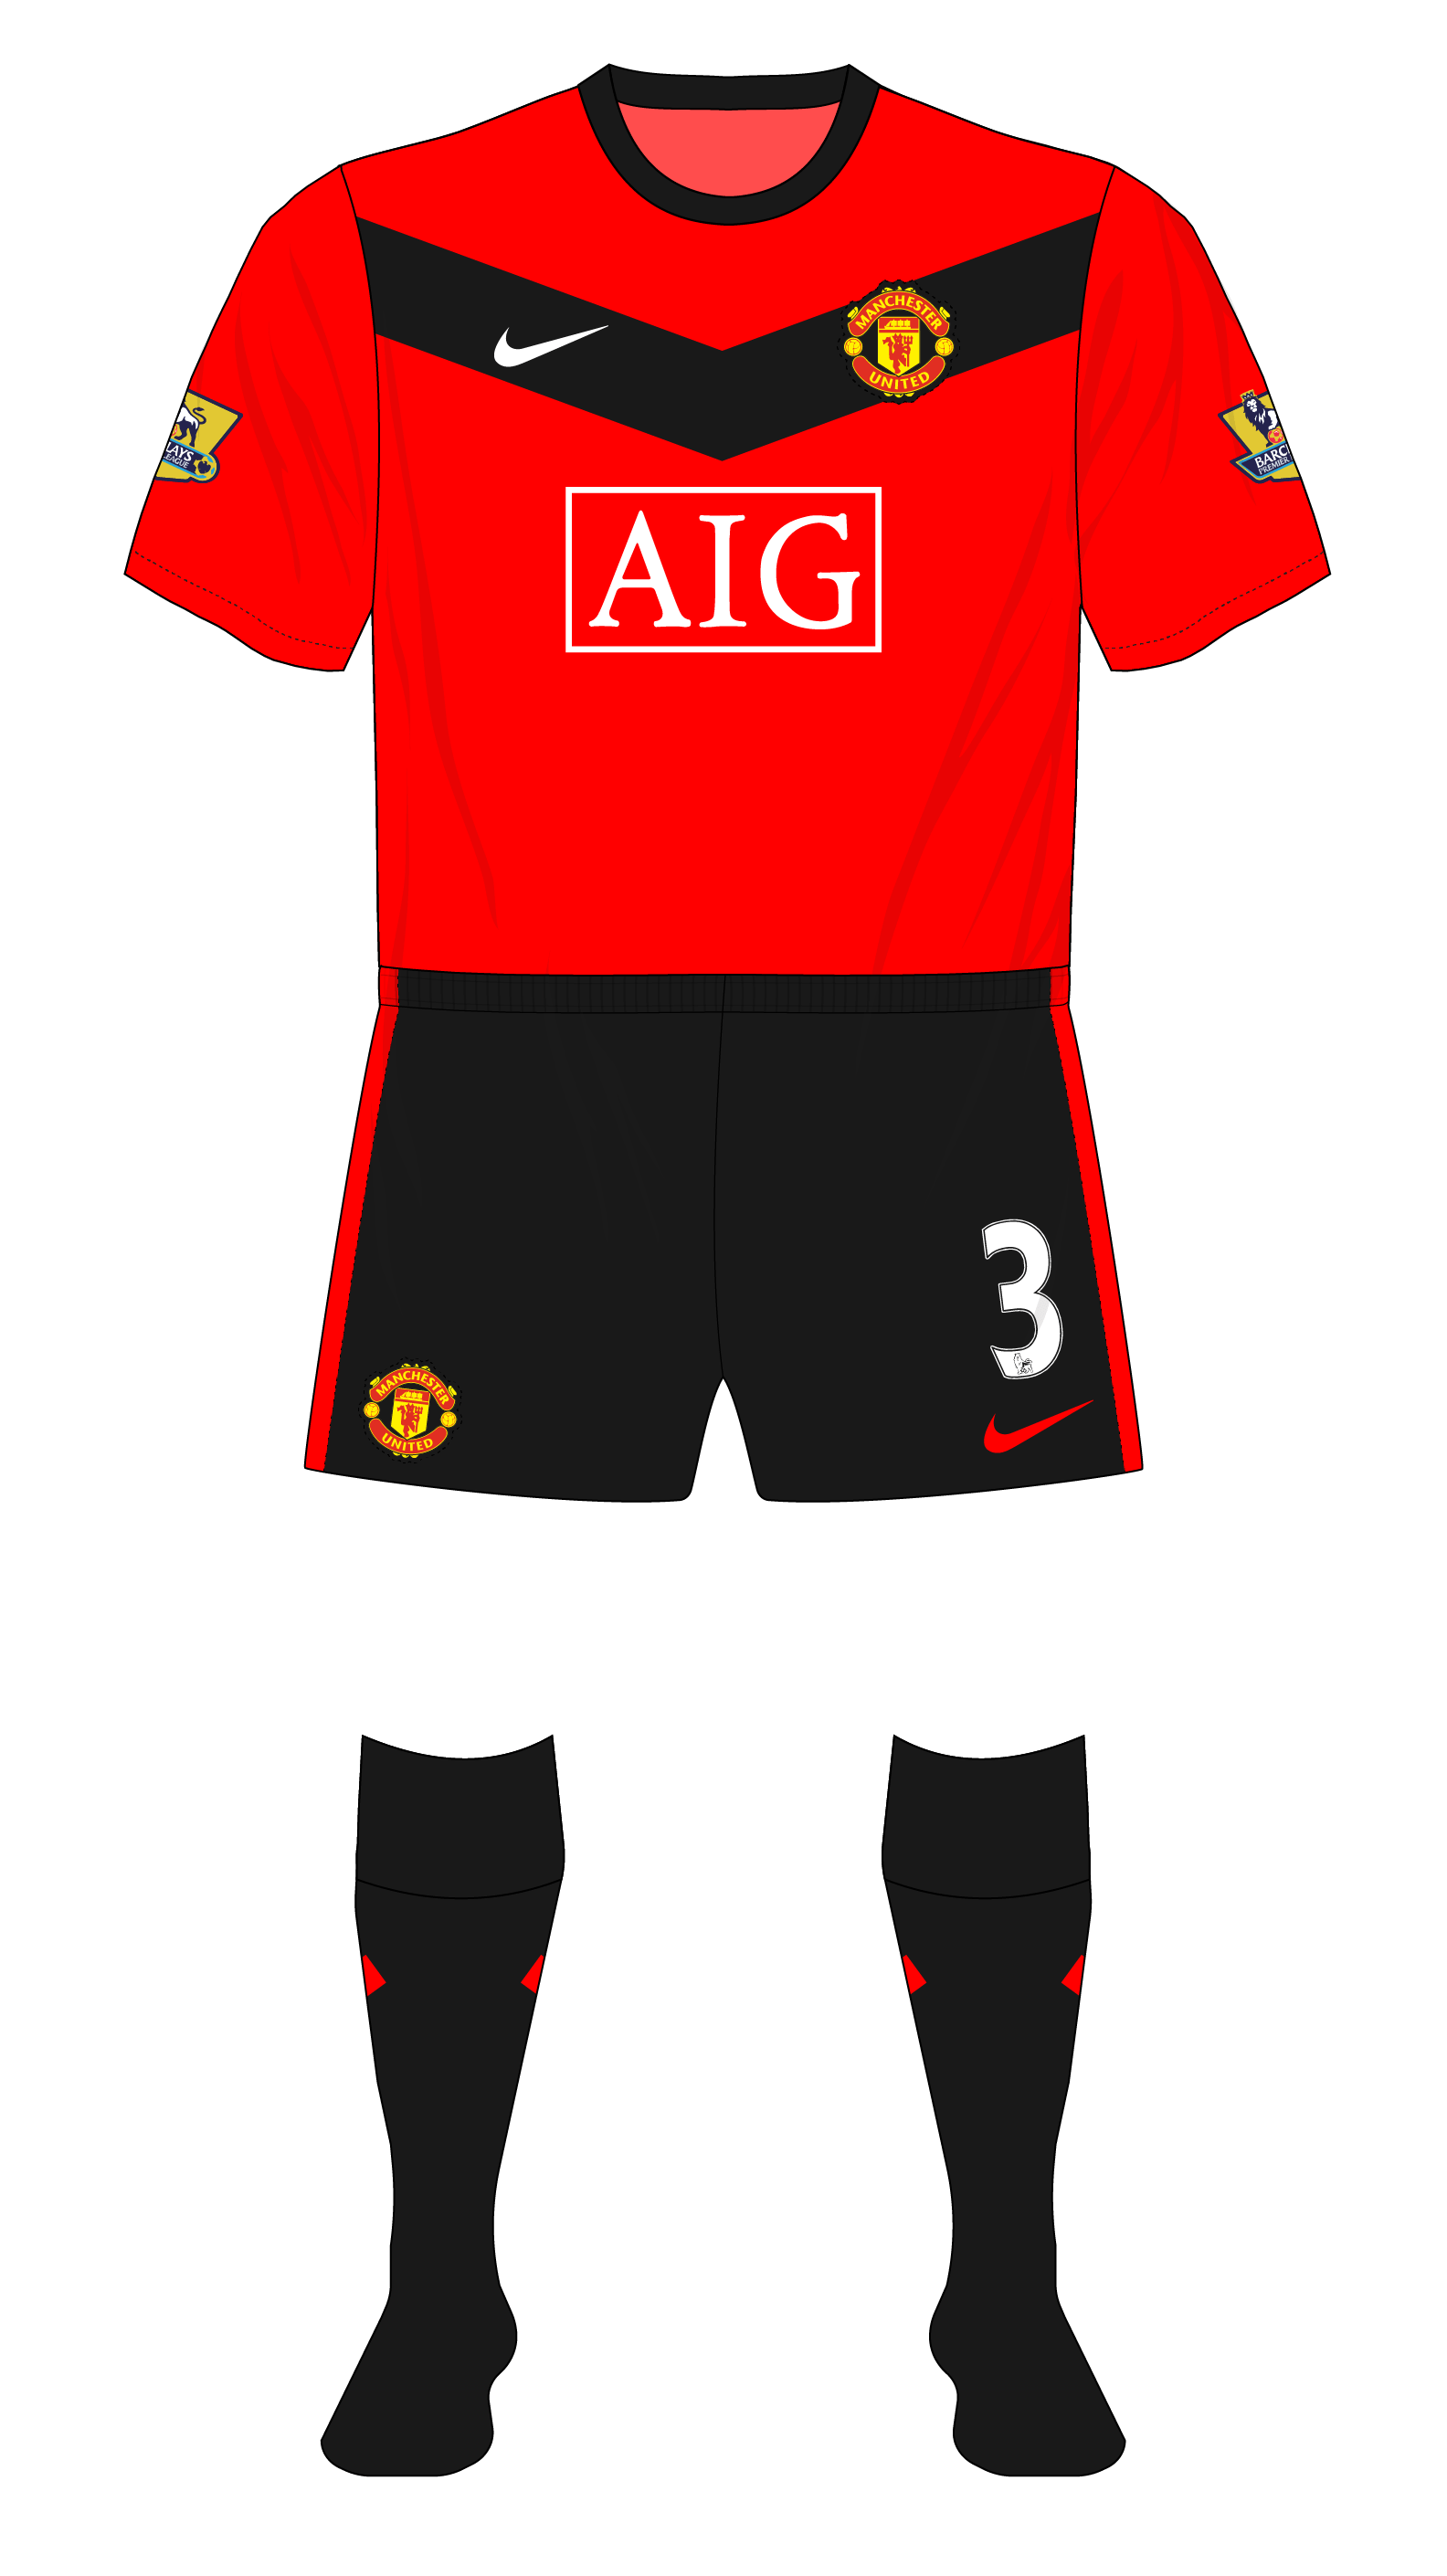 c9f6f0bade4 Season in kits – Manchester United